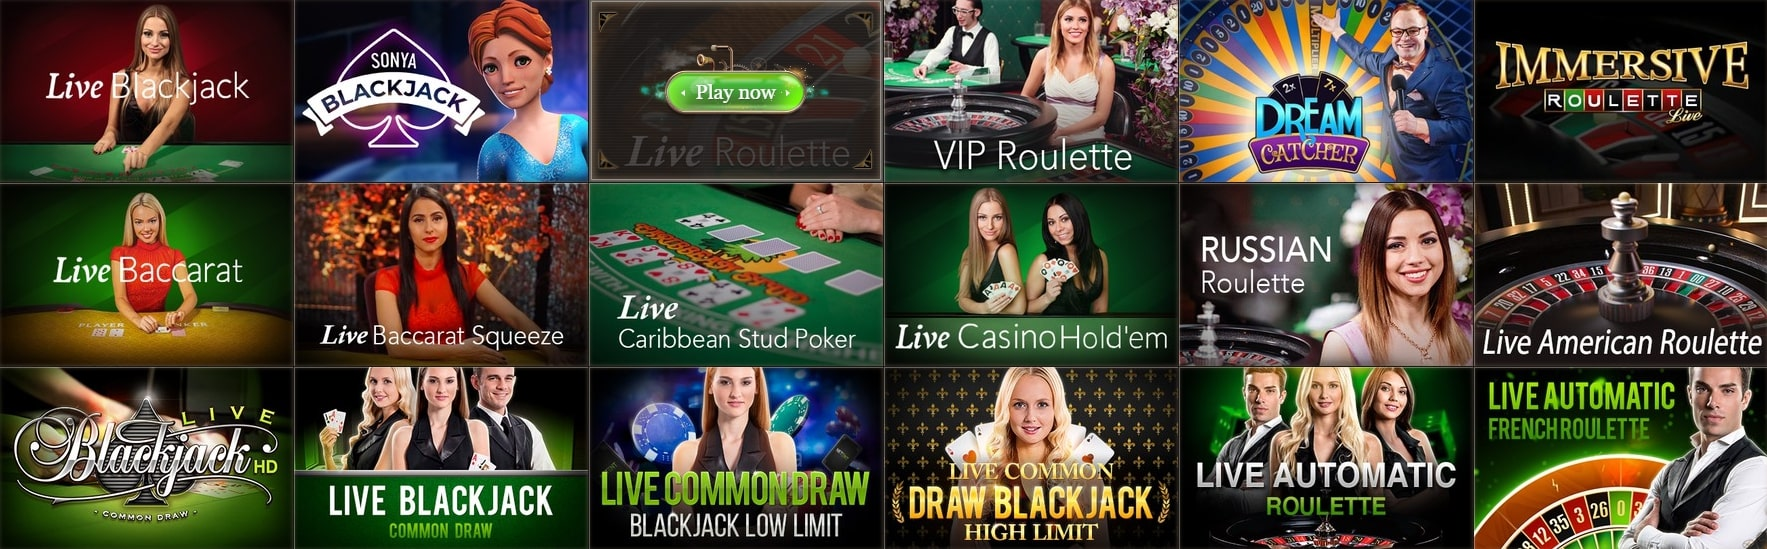 JoyCasino Games With Live Dealers